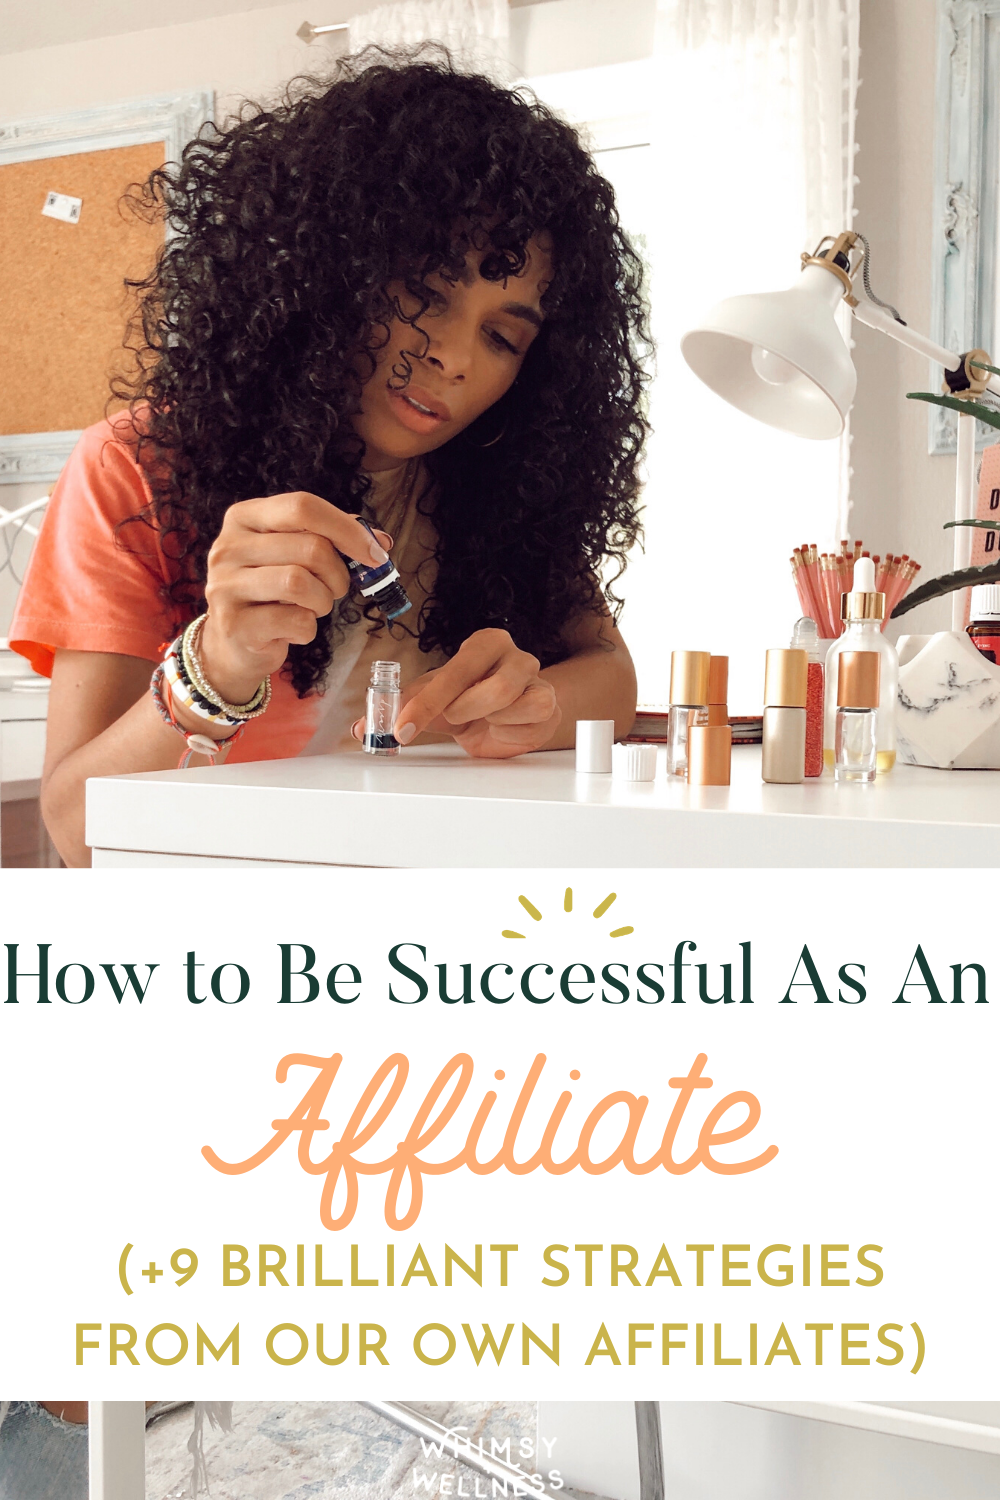 How to Be Successful As An Affiliate (+9 Brilliant Strategies From Our Own Affiliates)